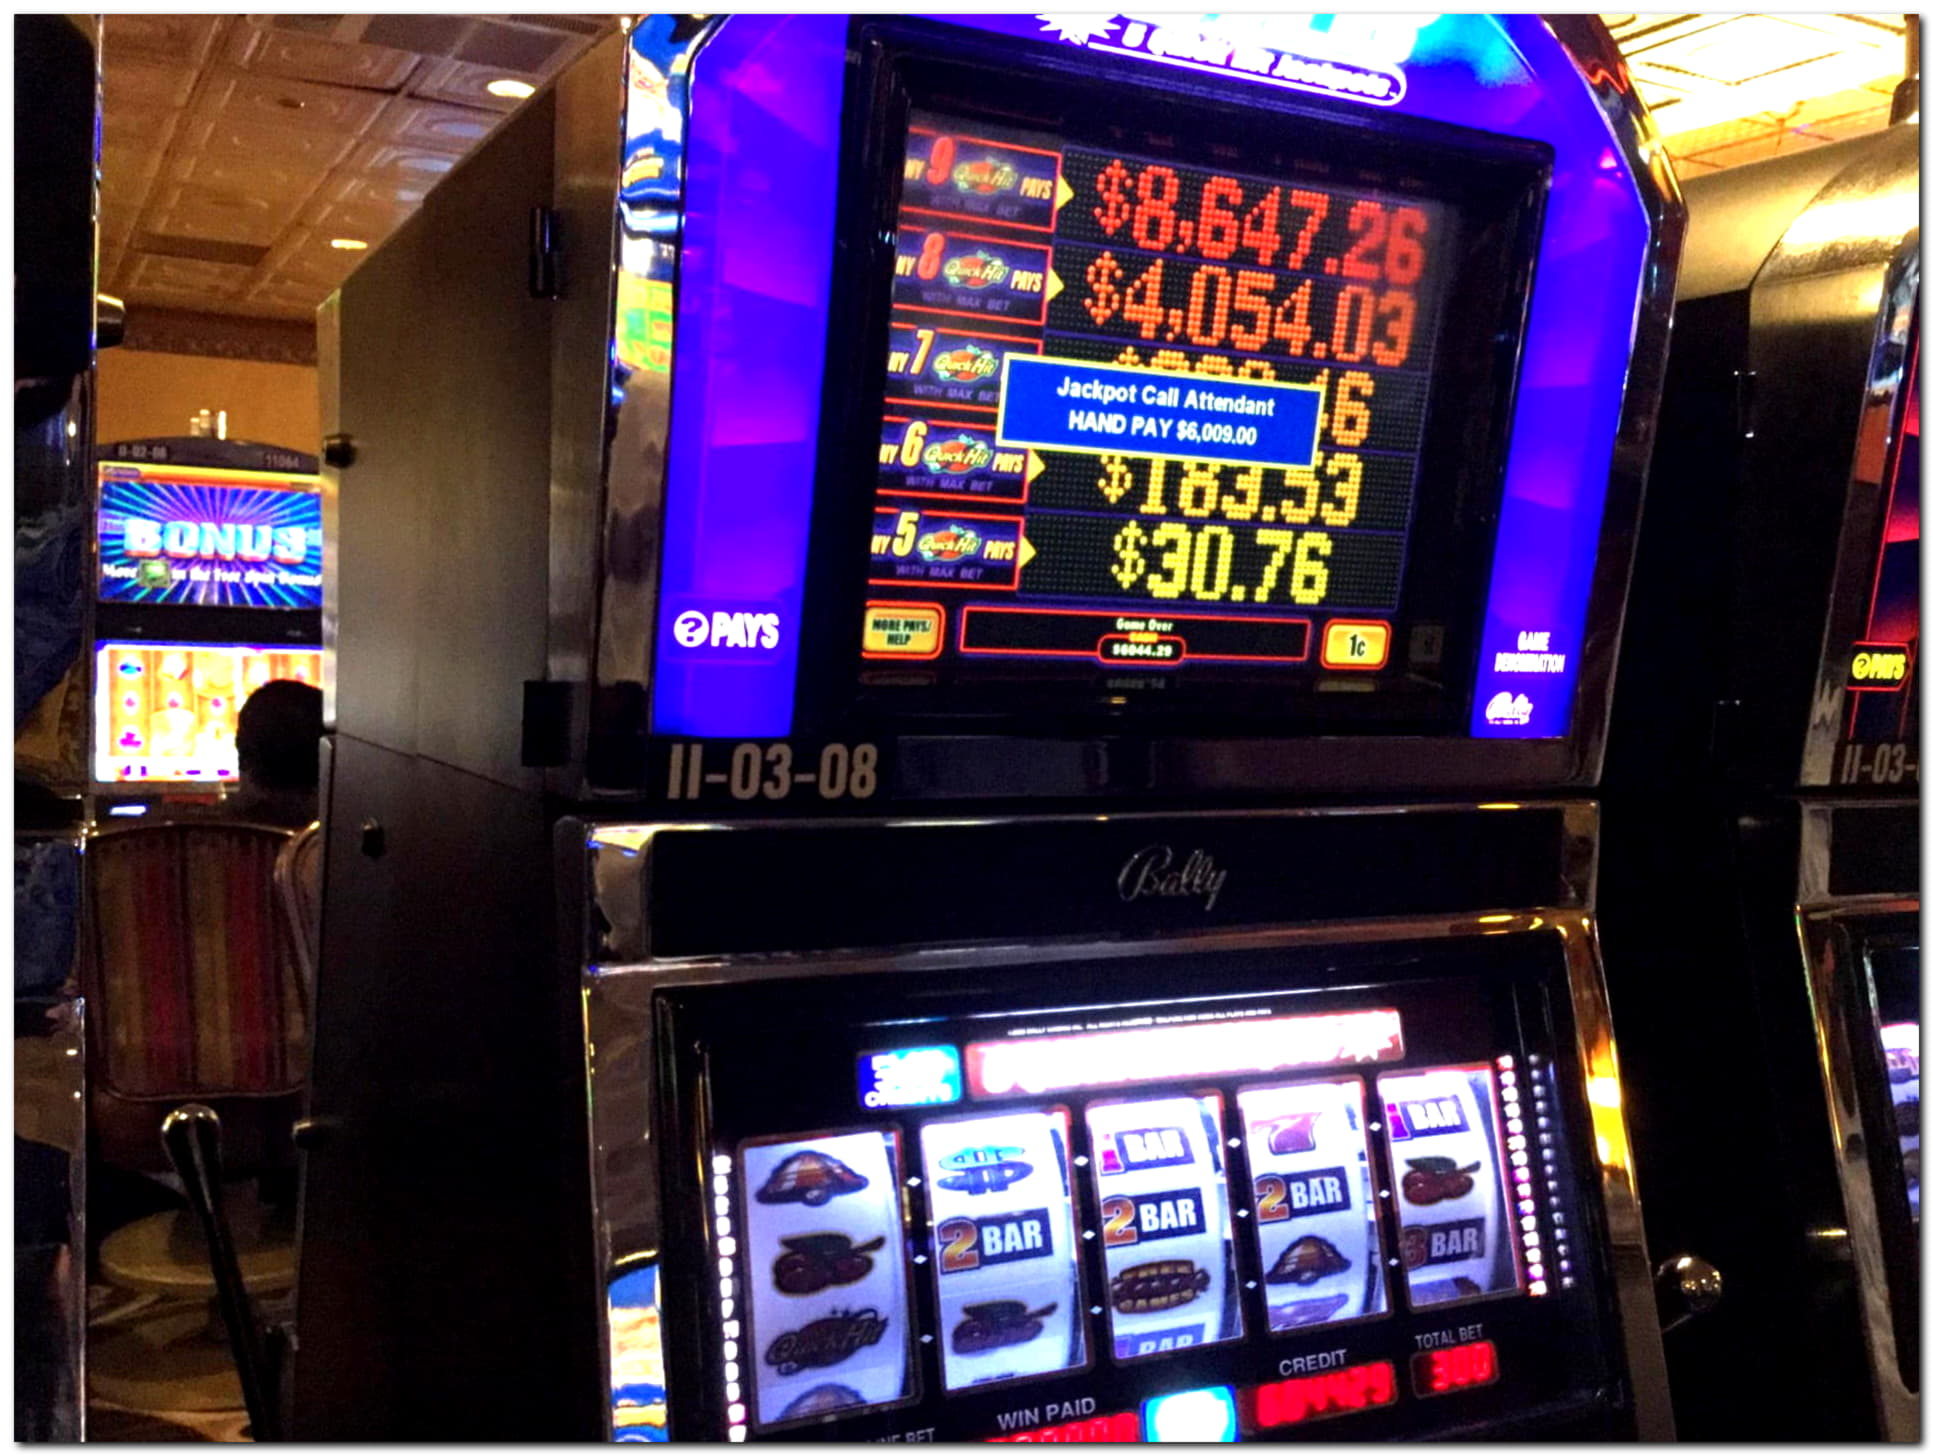 $520 Daily freeroll slot tournament at Spin Up Casino